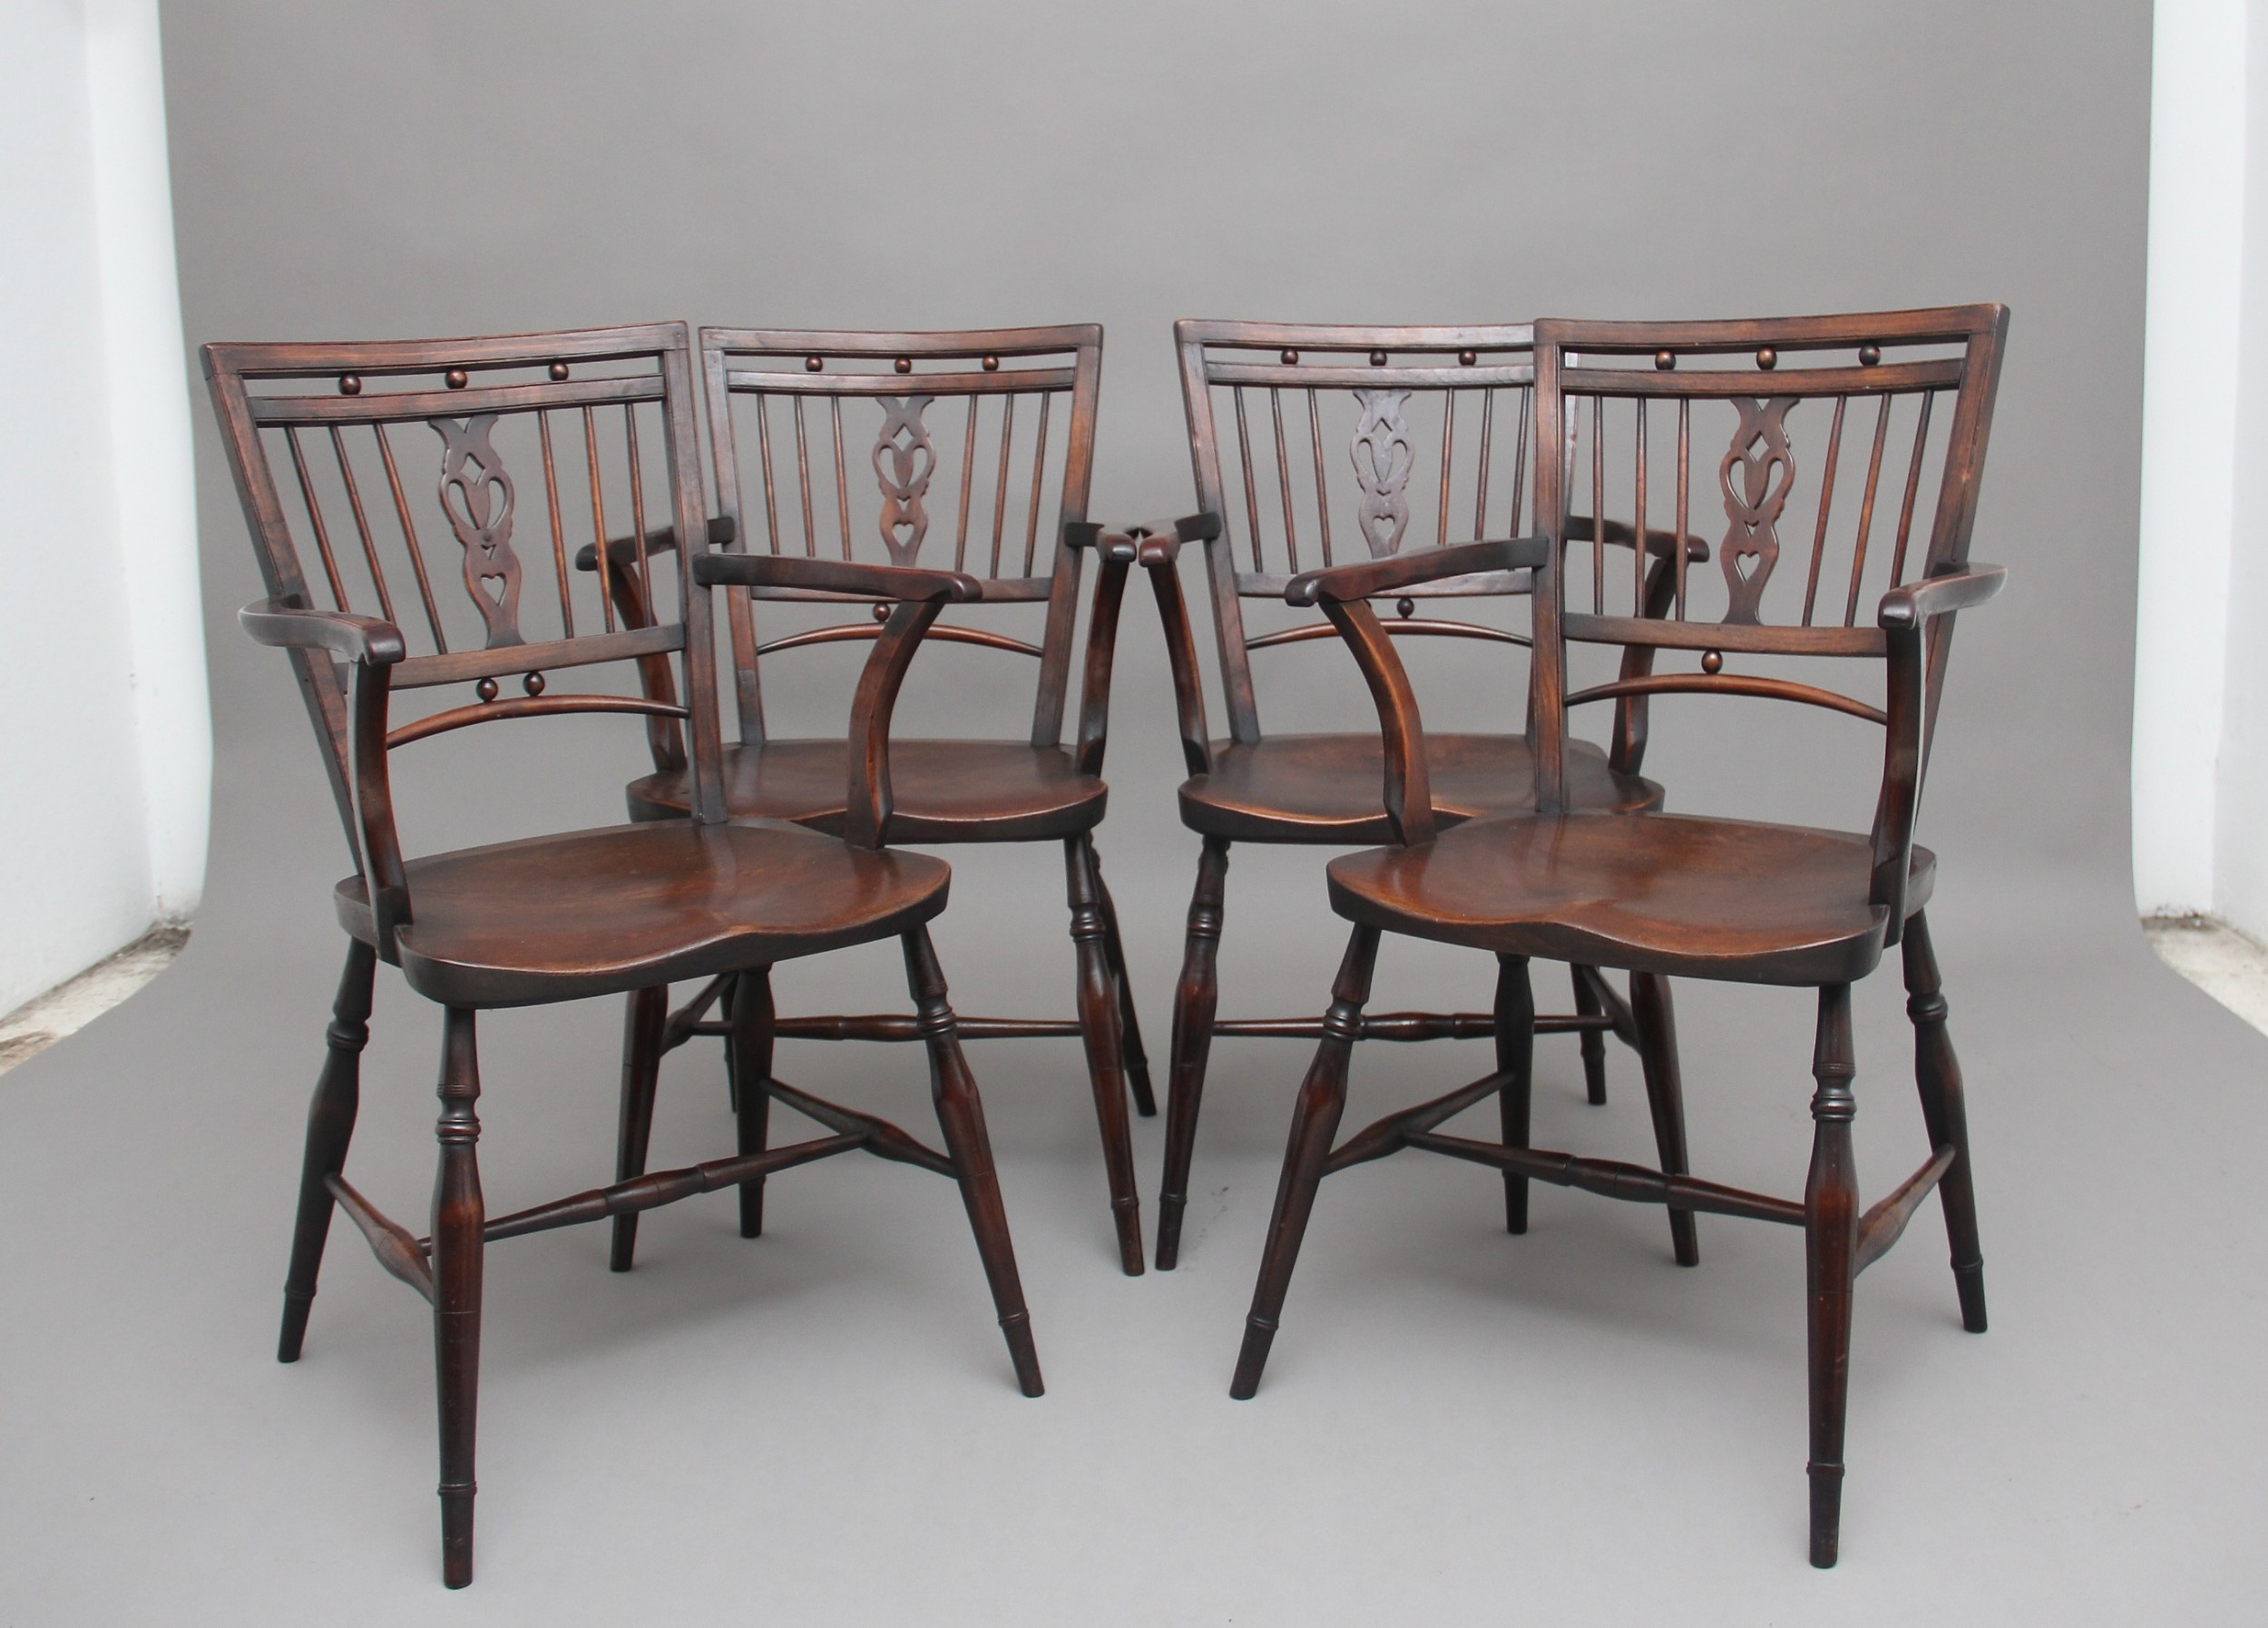 set of four early 20th century mendlesham armchairs